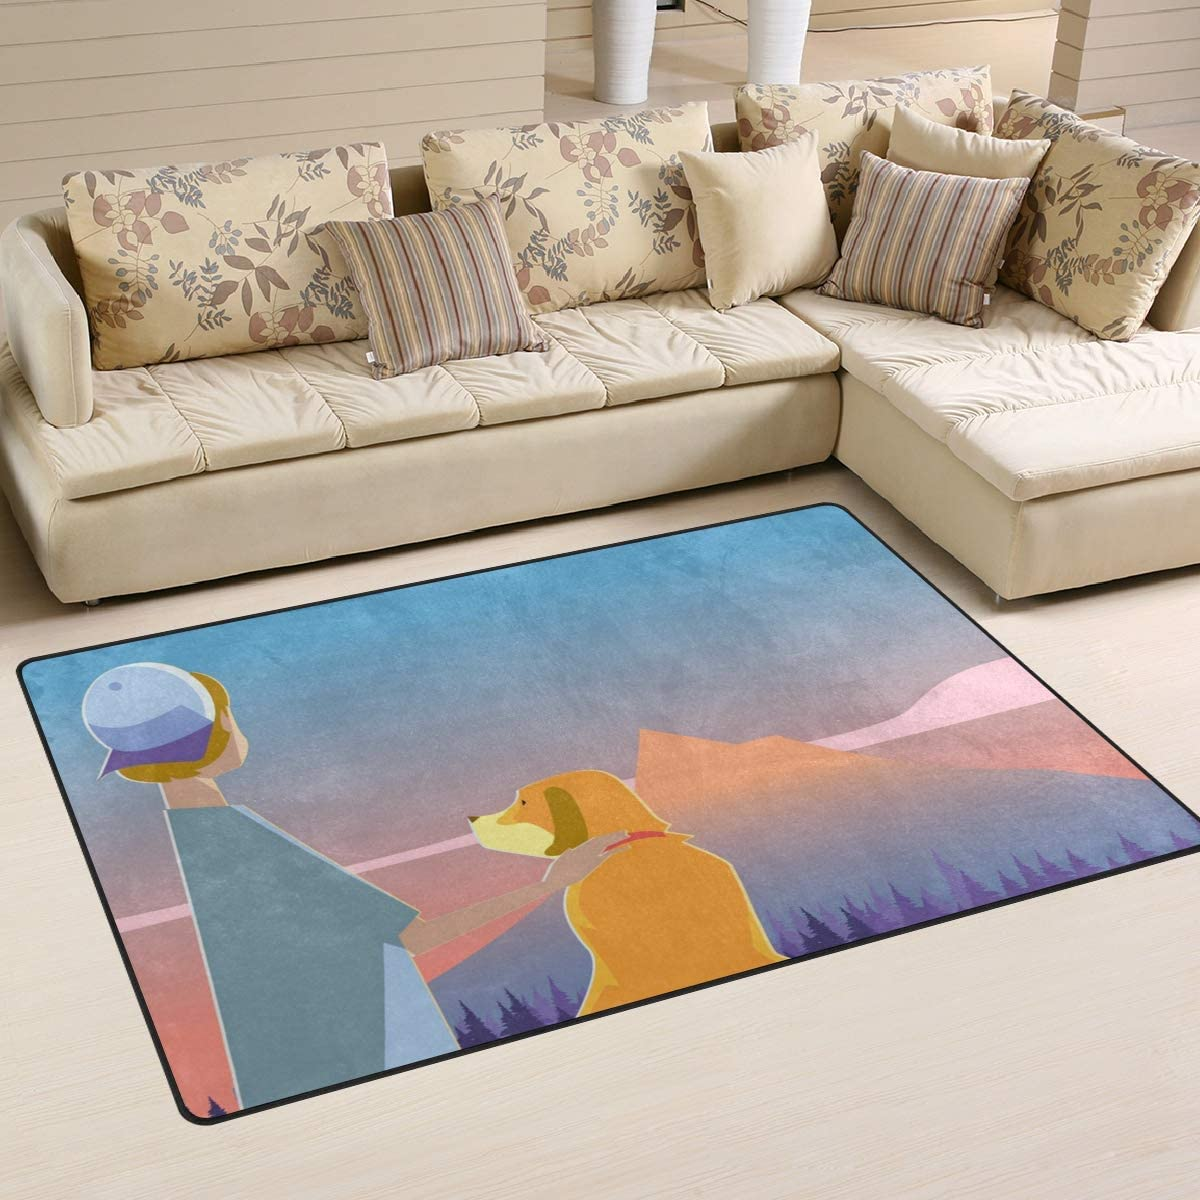 : Area Rug Simple Modern Carpets Boy with His Dog